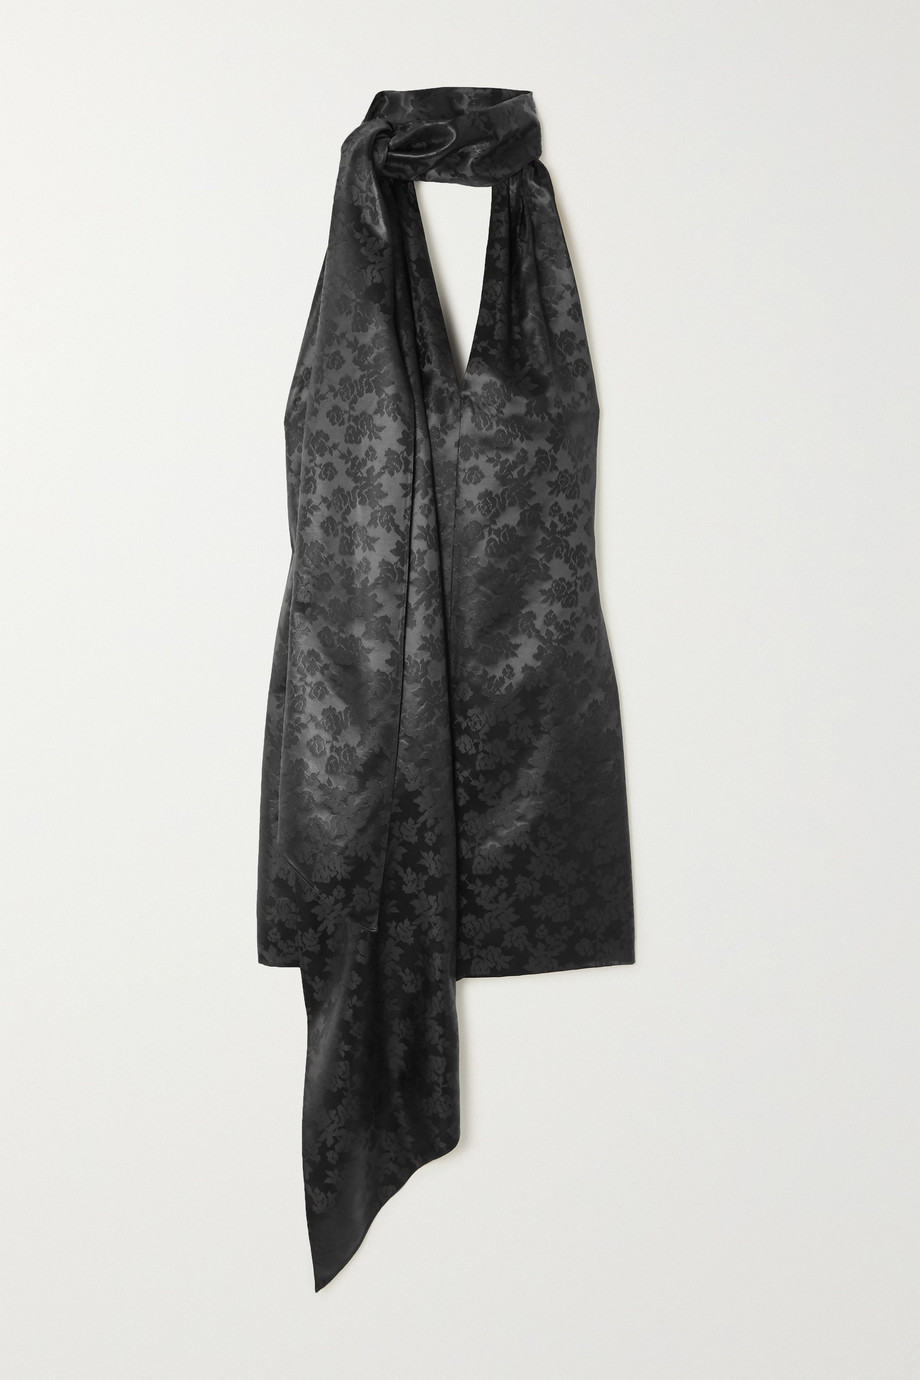 Givenchy Satin-jacquard halterneck mini dress